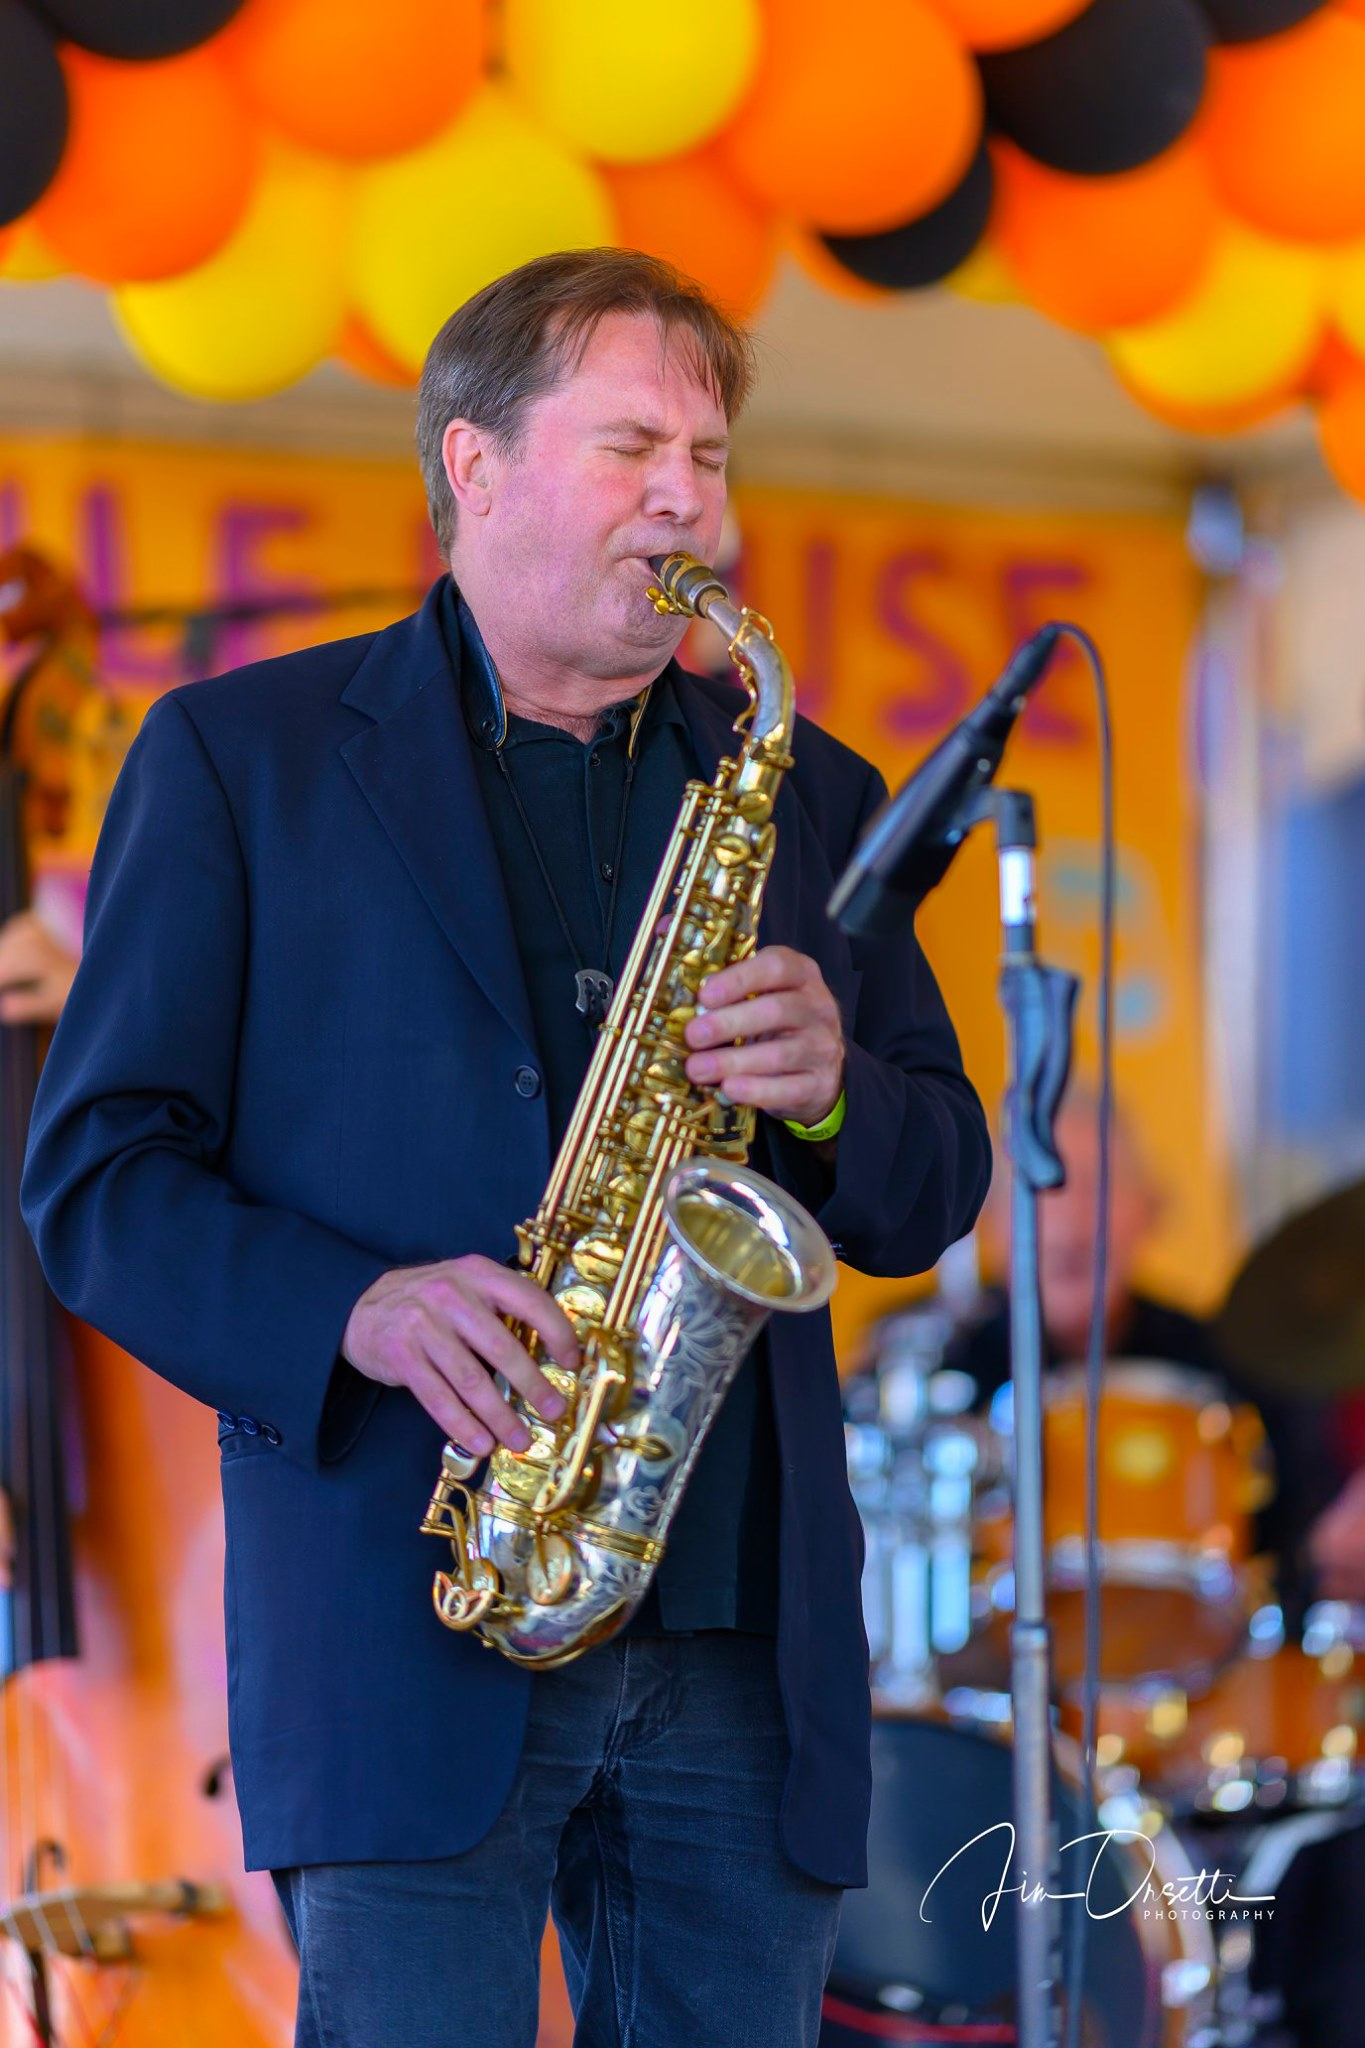 Andrew Speight at the 2nd Annual 7 Mile House Jazz Fest 2019